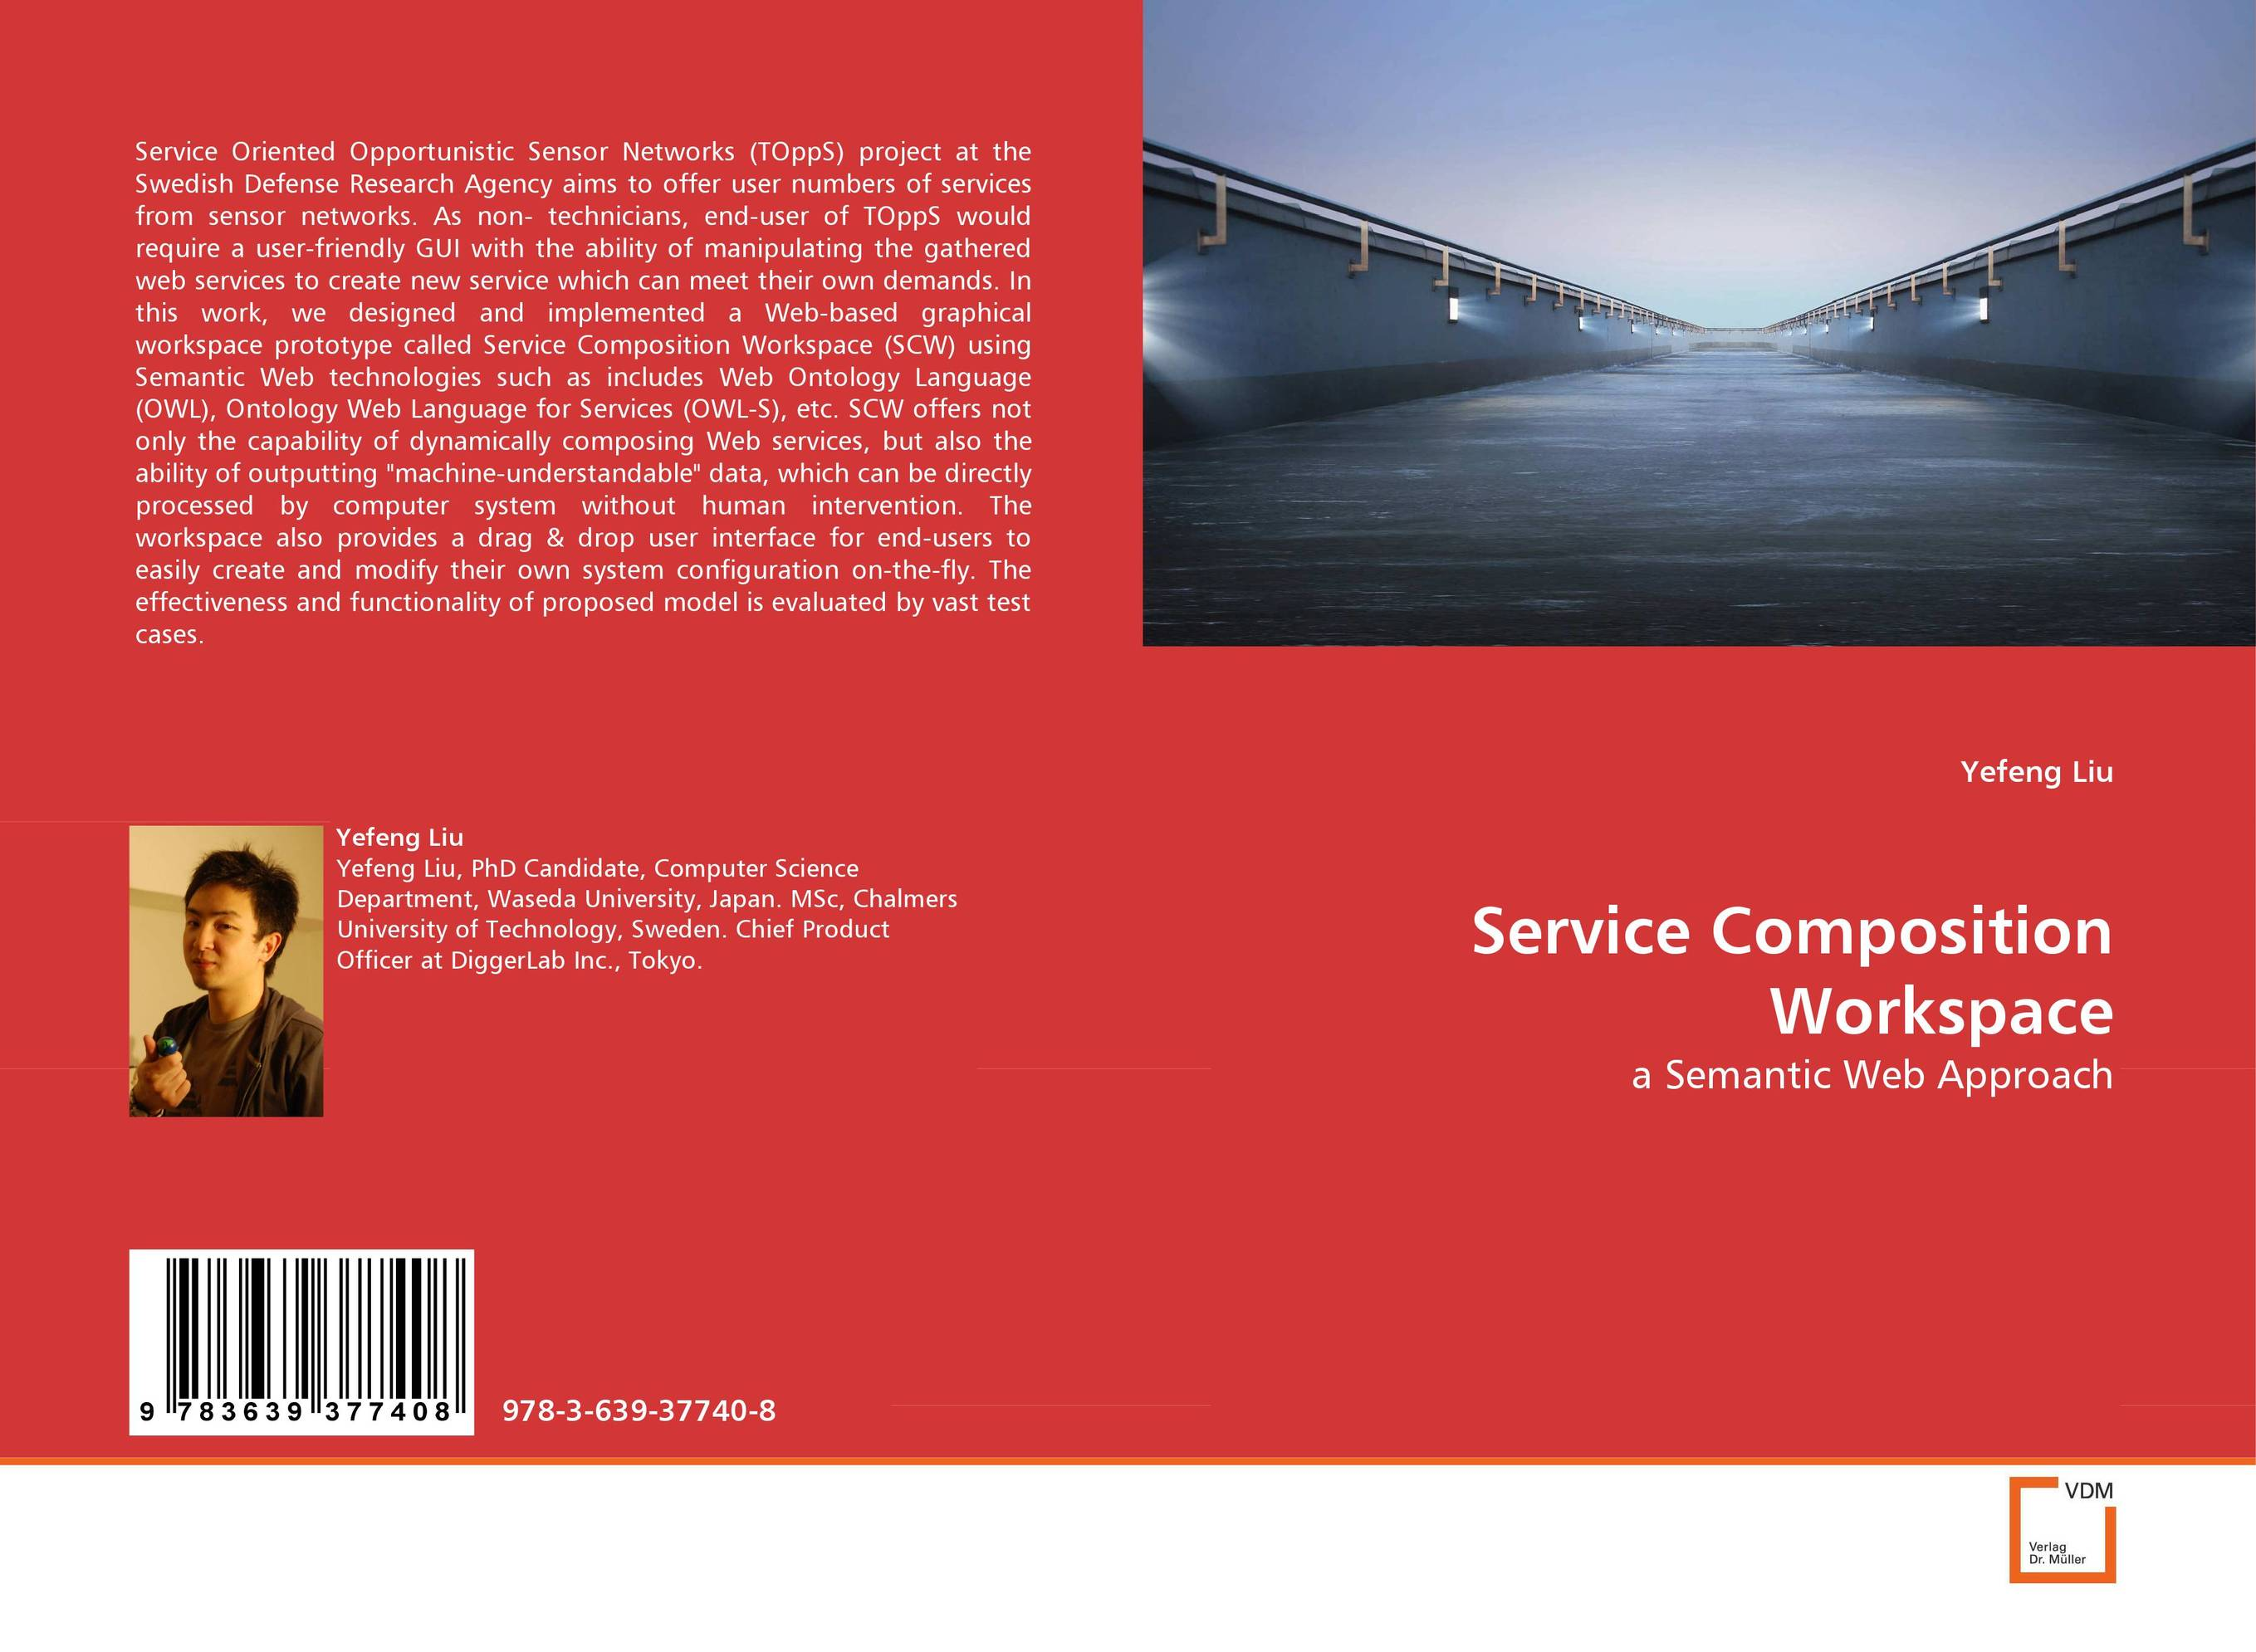 Service Composition Workspace dynamic web service composition using google api crawling